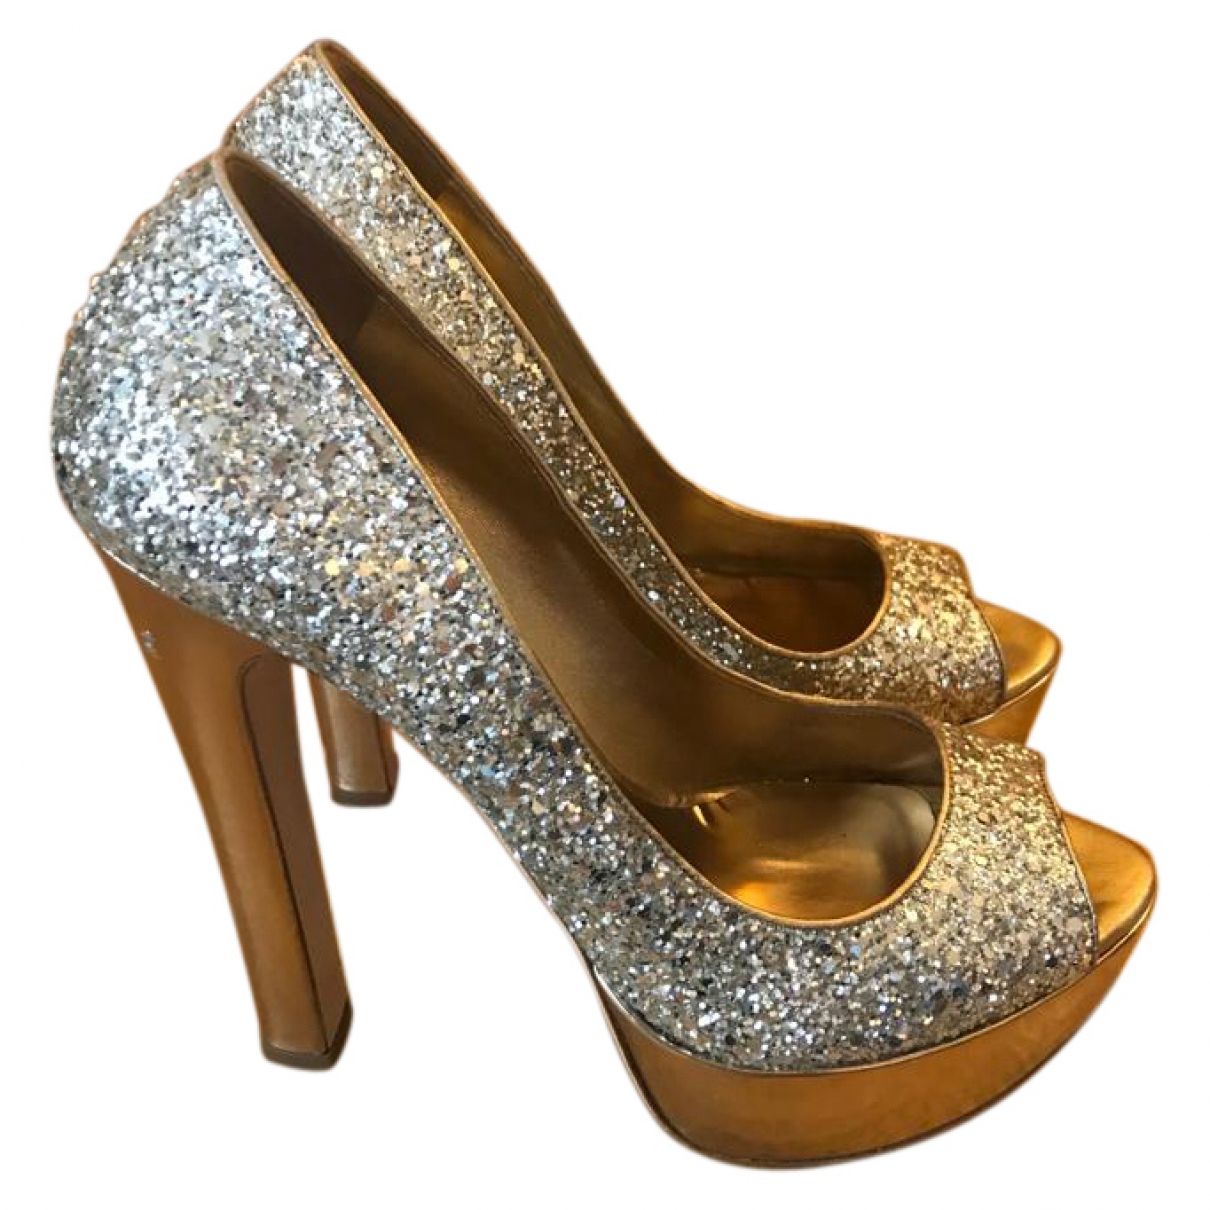 Miu Miu \N Gold Glitter Heels for Women 39 EU